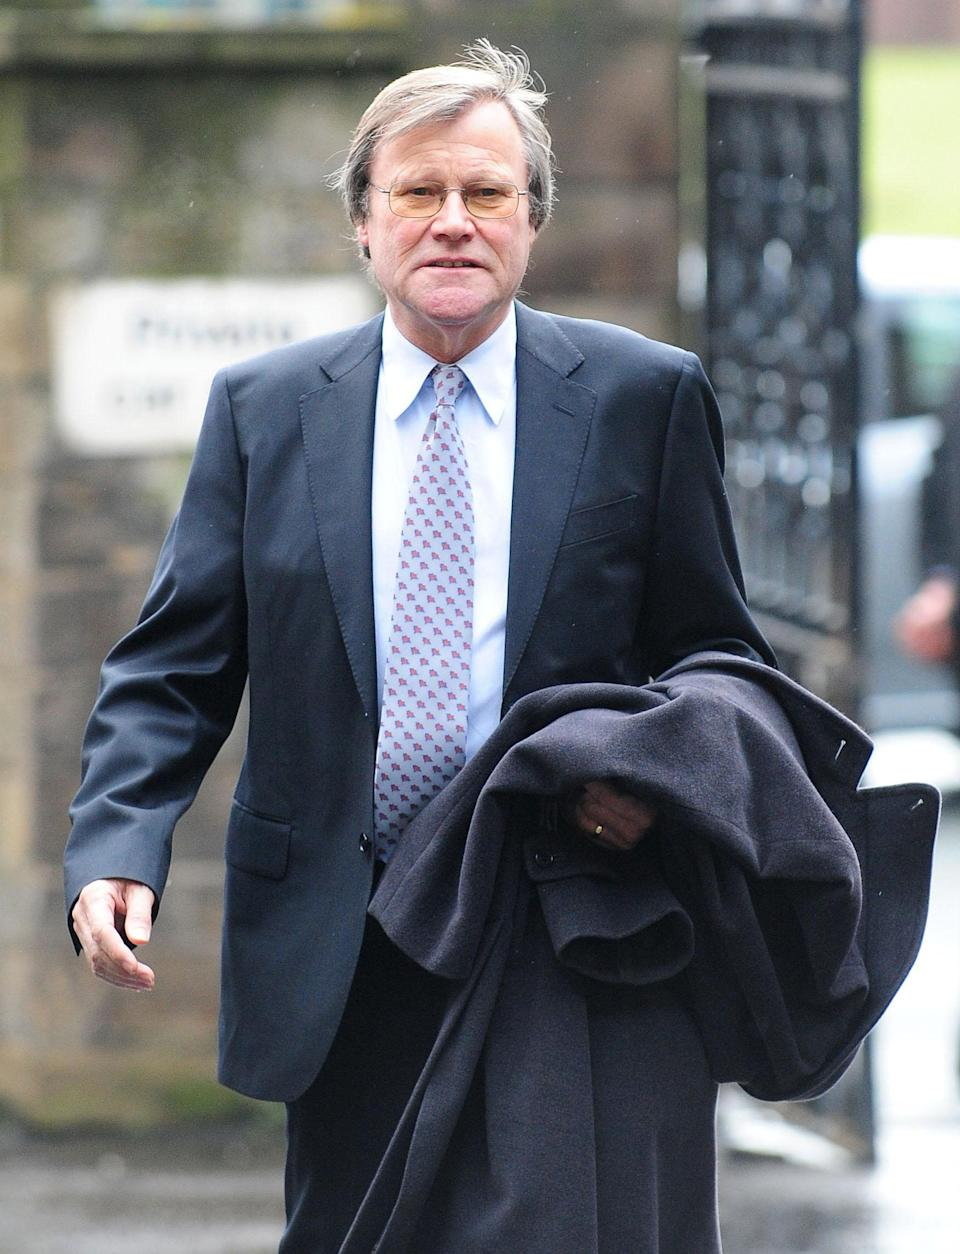 David Neilson is the instantly recognisable actor who plays Roy Cropper in 'Coronation Street'  but soap superfans will know that he also made one brief appearance 'EastEnders'.